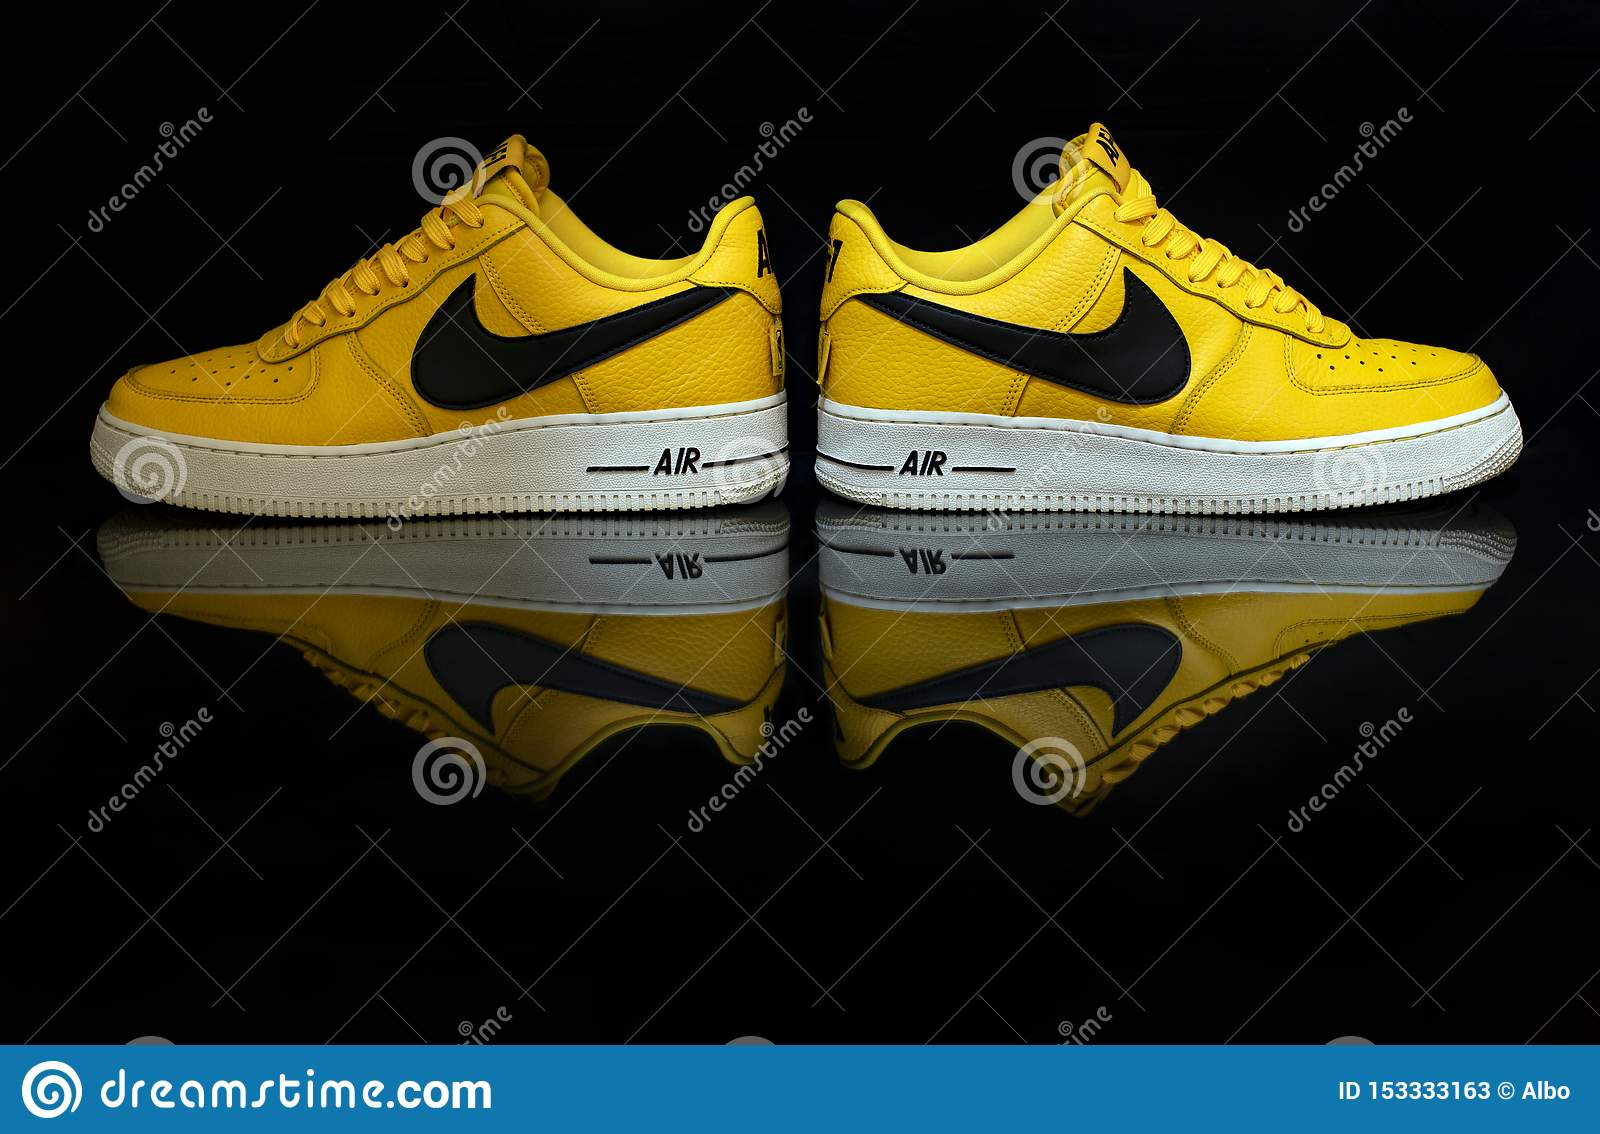 oriental Monje galería  Yellow Nike Air Force editorial stock photo. Image of background - 153333163